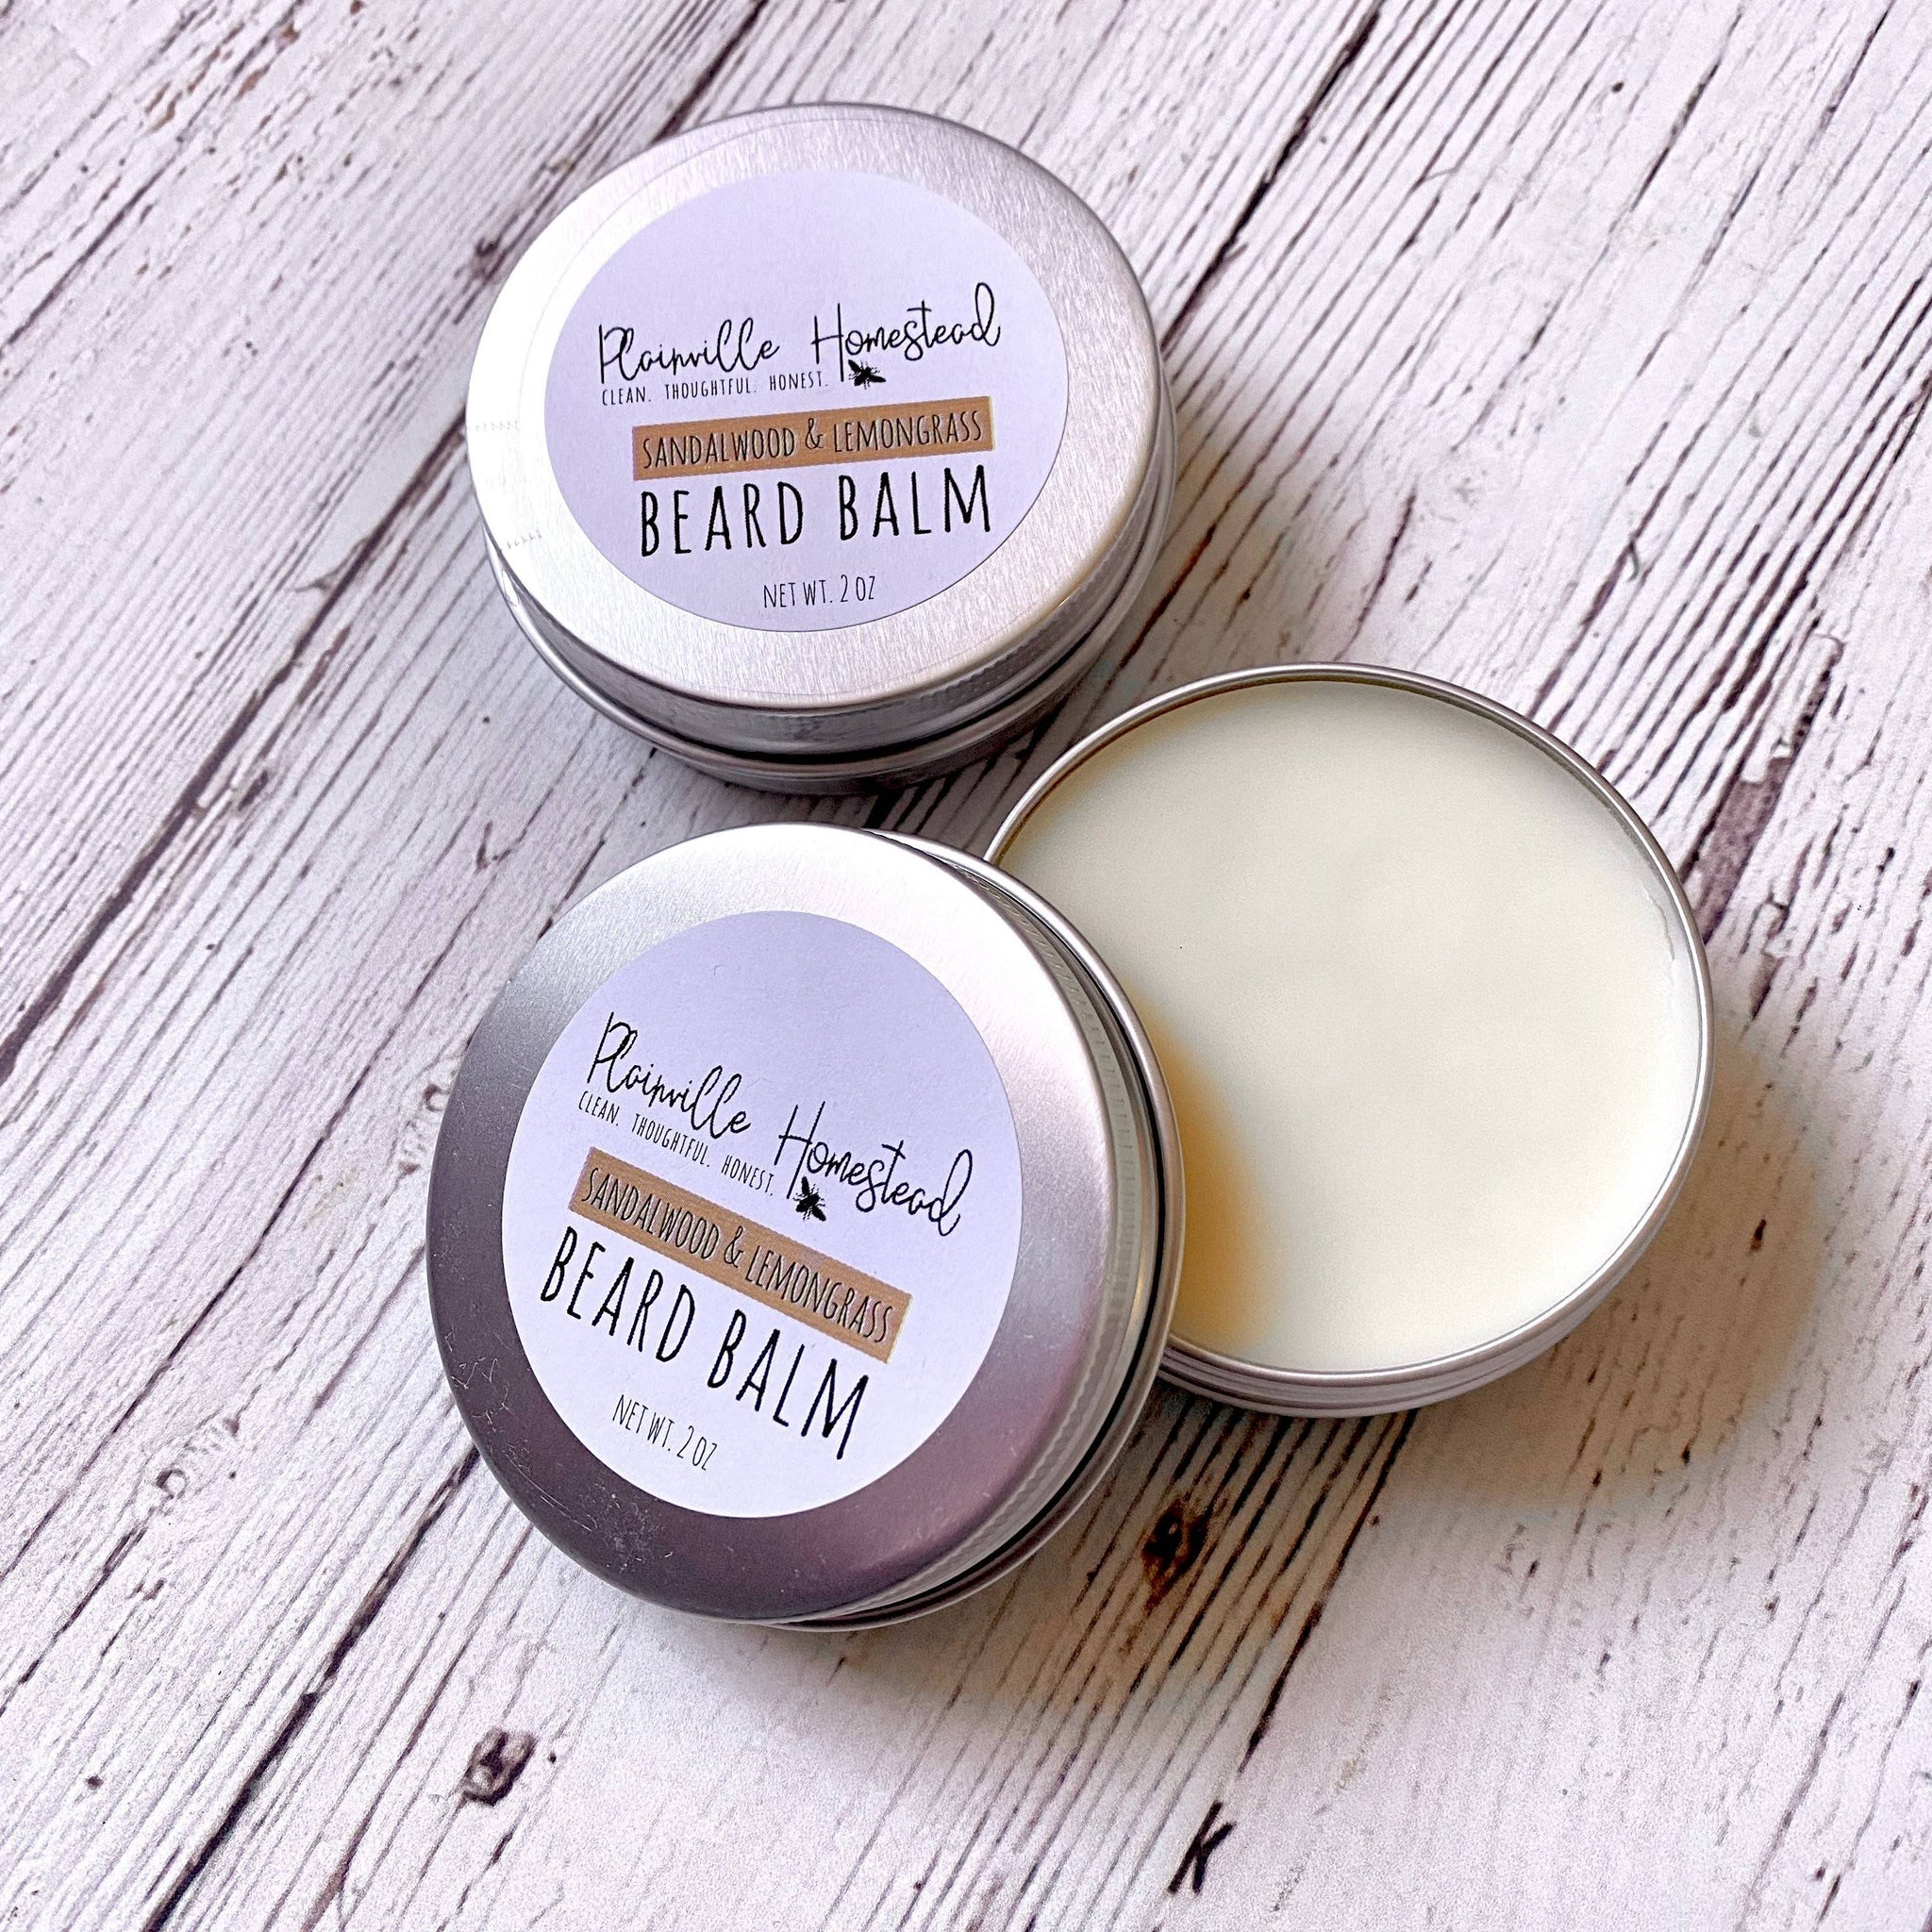 Sandalwood & Lemongrass Beard Balm